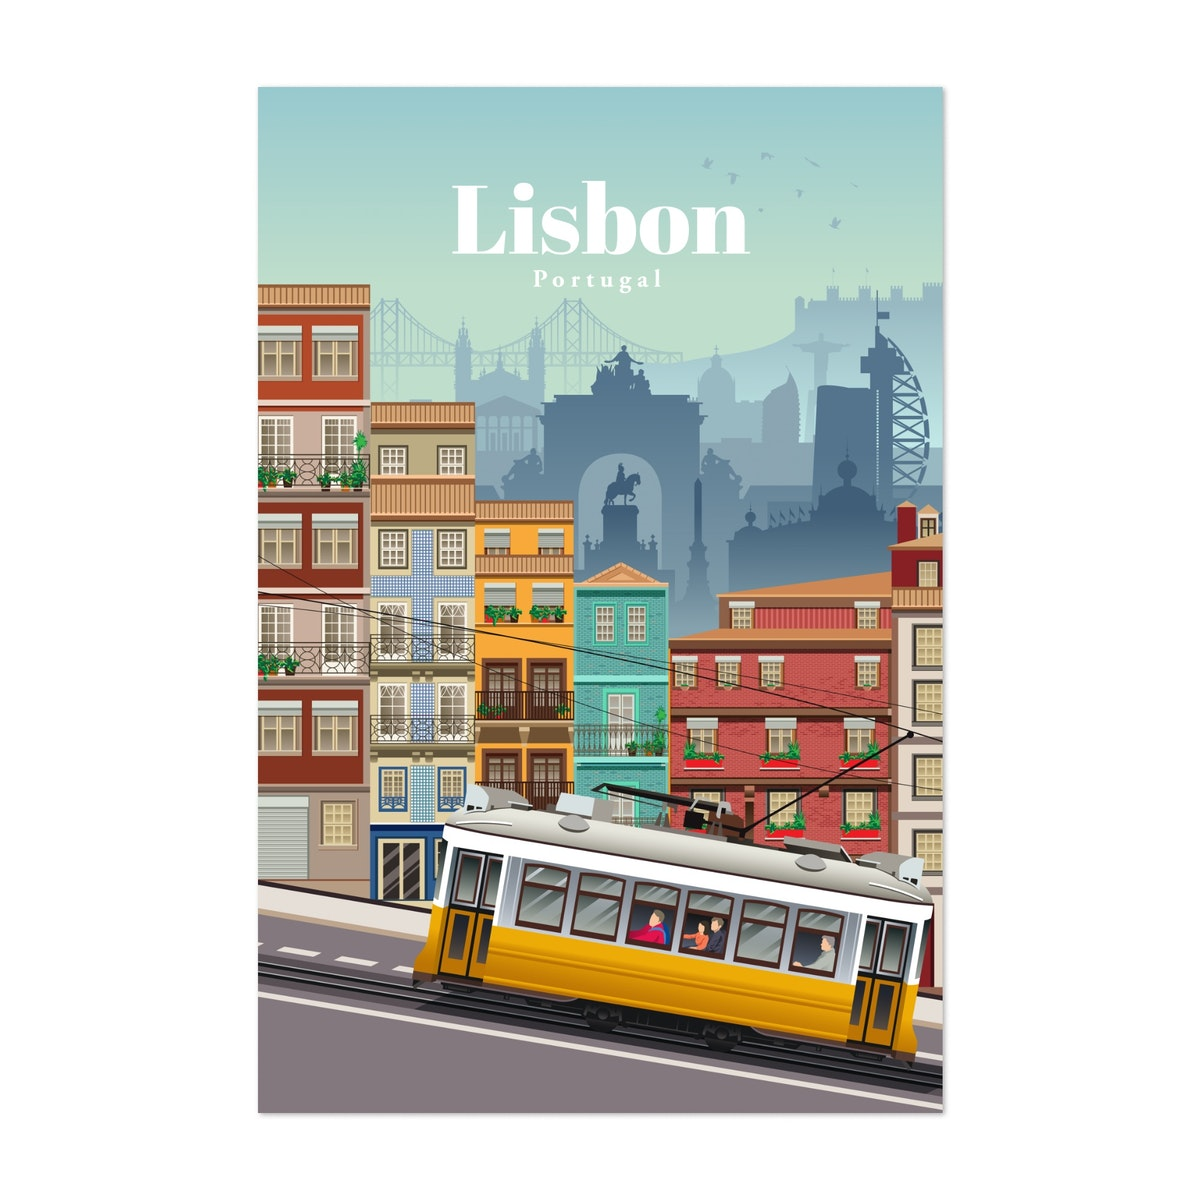 Travel to Lisbon